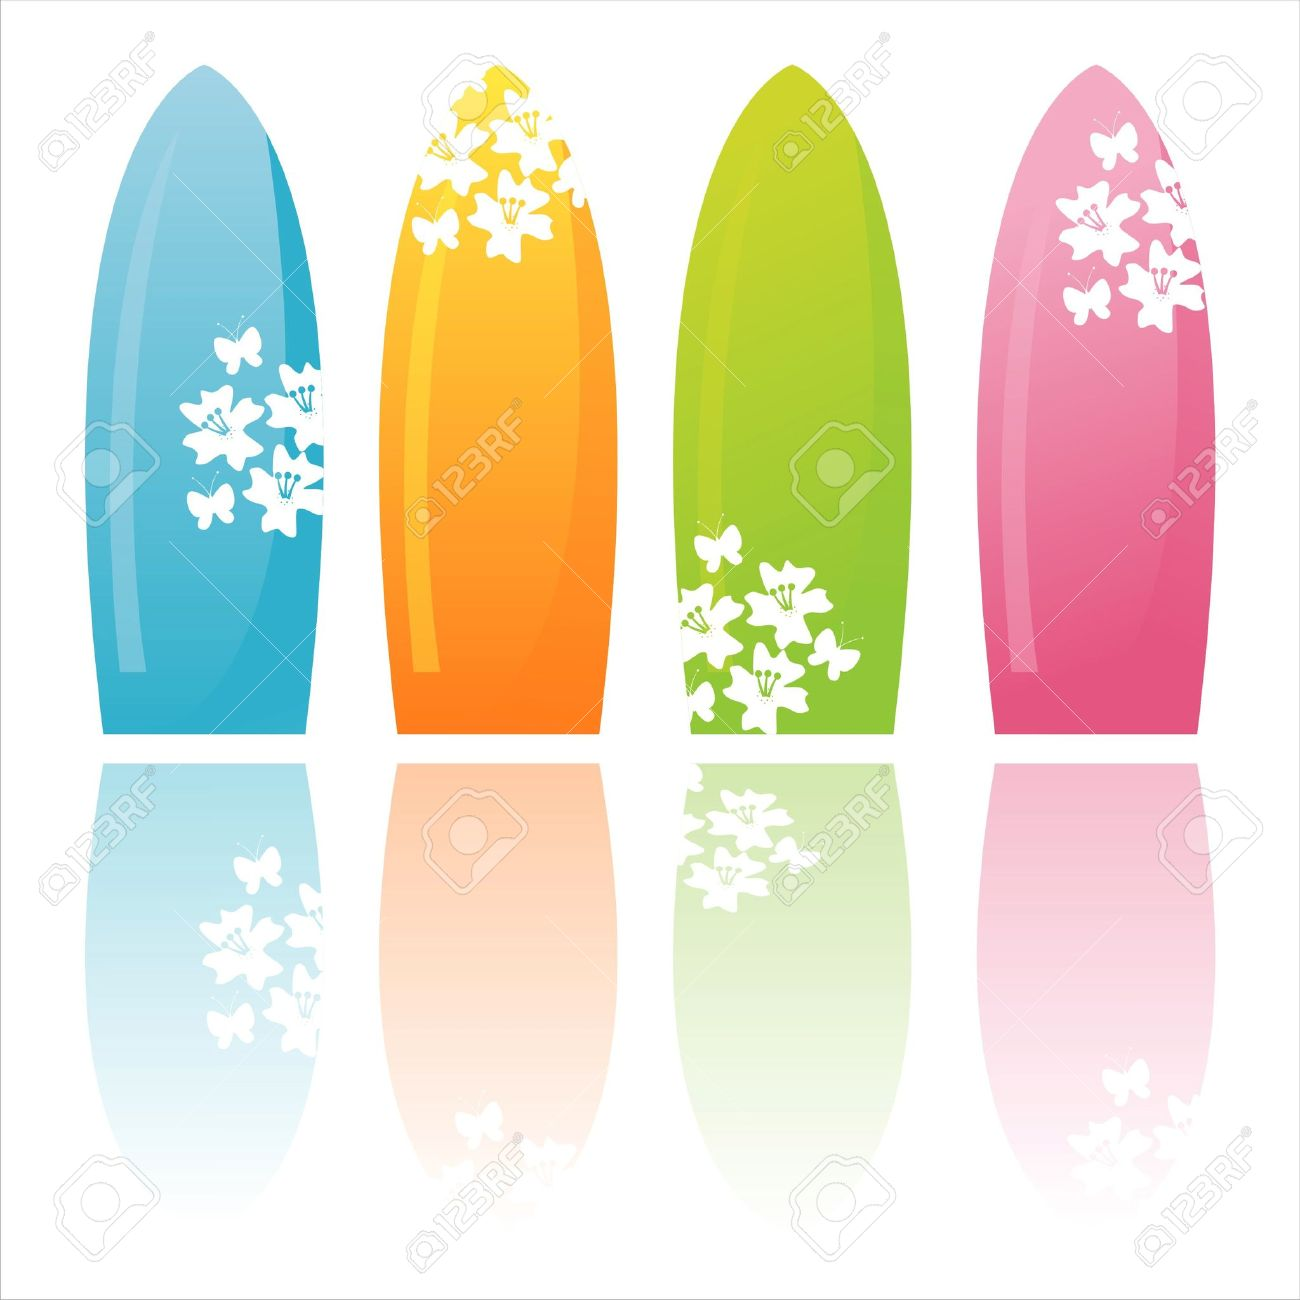 1300x1300 Surfboard Clipart Colorful